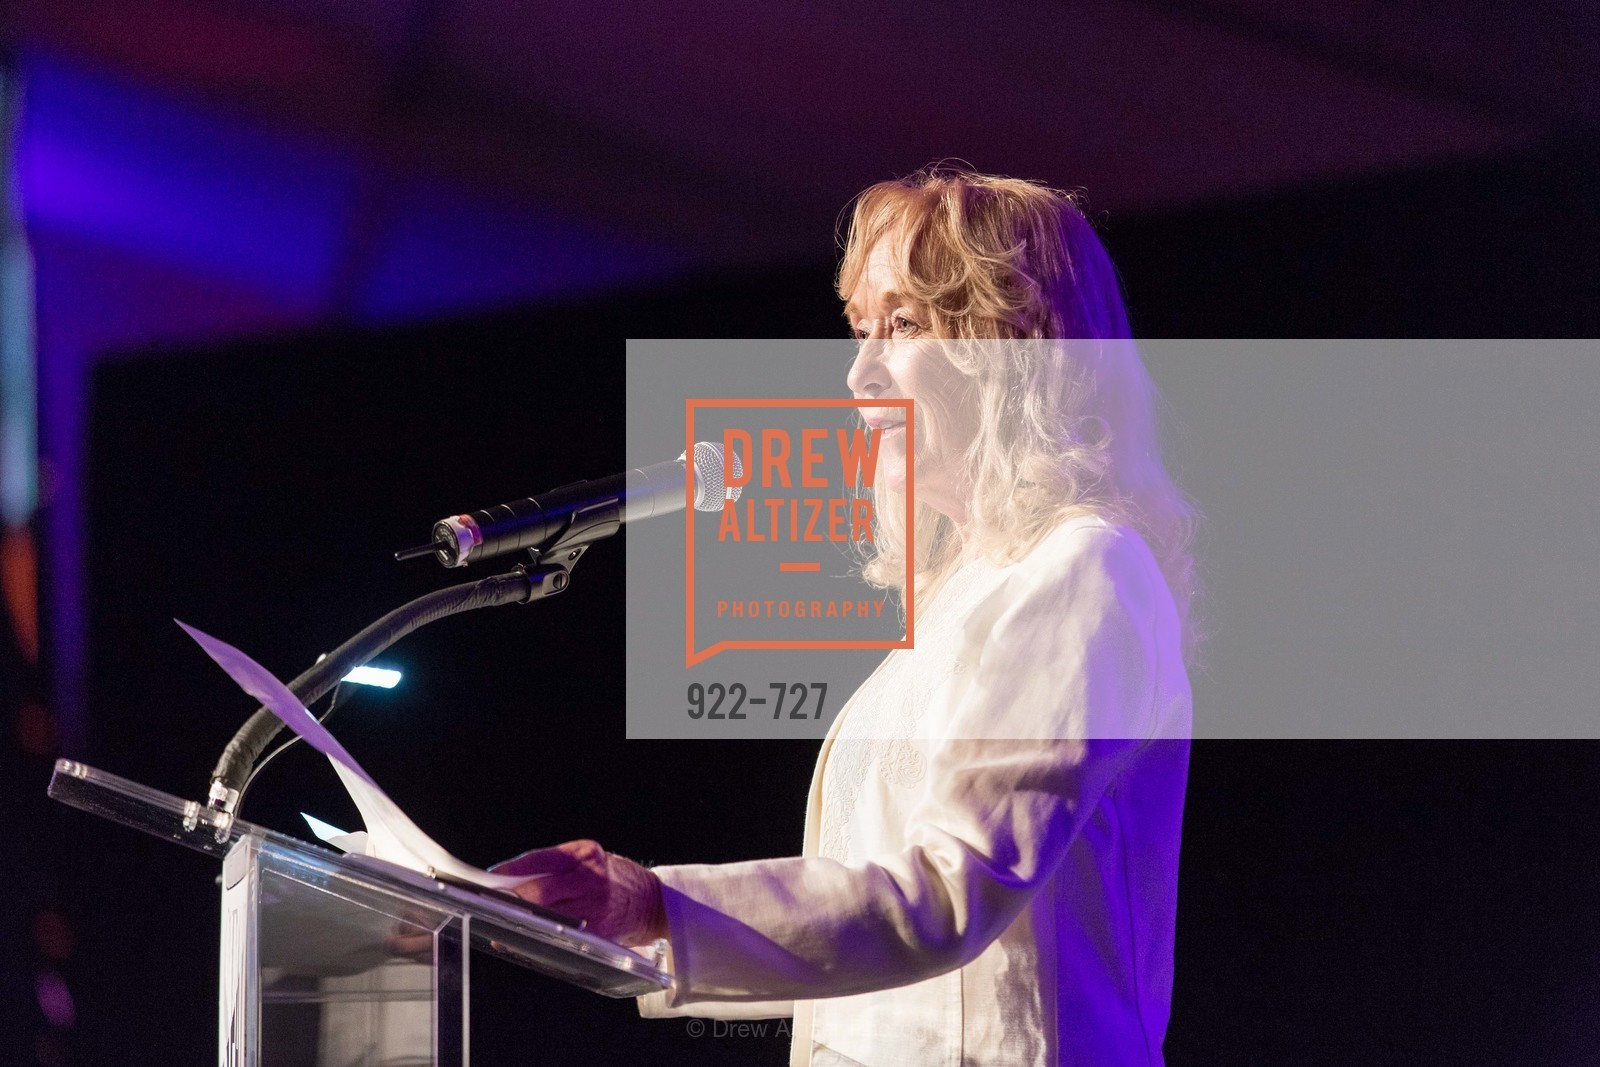 Cynthia Plevin, SAN FRANCISCO ART INSTITUTE Gala Honoring Art Visionary and Advocate ROSELYNE CHROMAN SWIG, US, May 14th, 2015,Drew Altizer, Drew Altizer Photography, full-service agency, private events, San Francisco photographer, photographer california